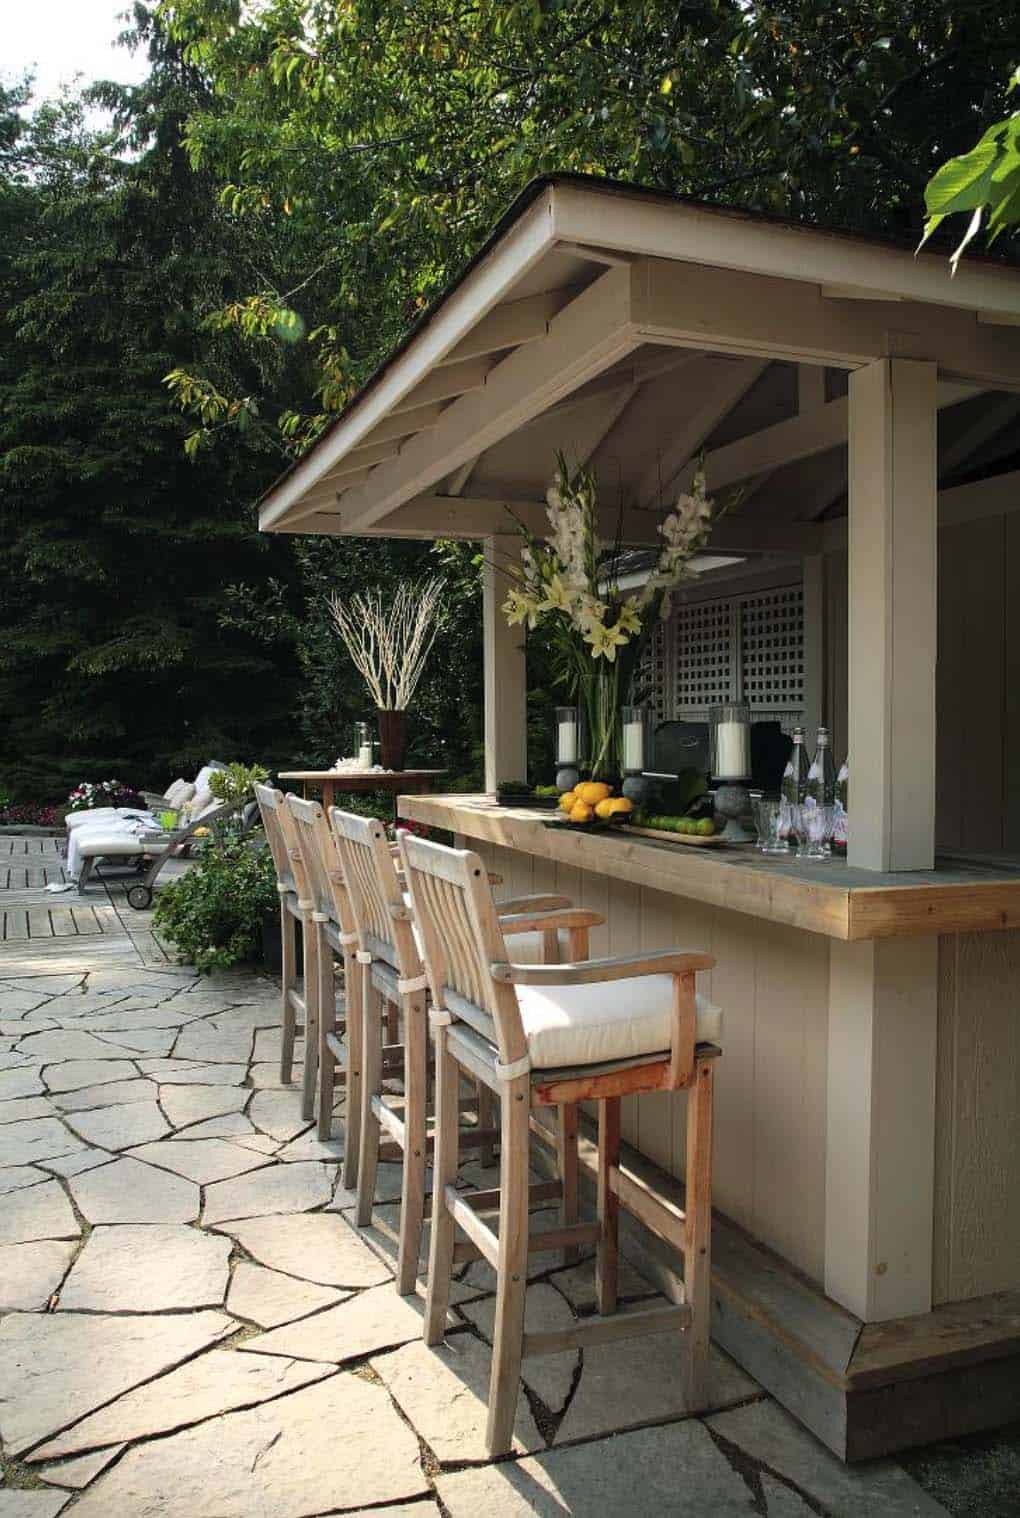 Outdoor Kitchens-Bars Entertaining-20-1 Kindesign.jpg